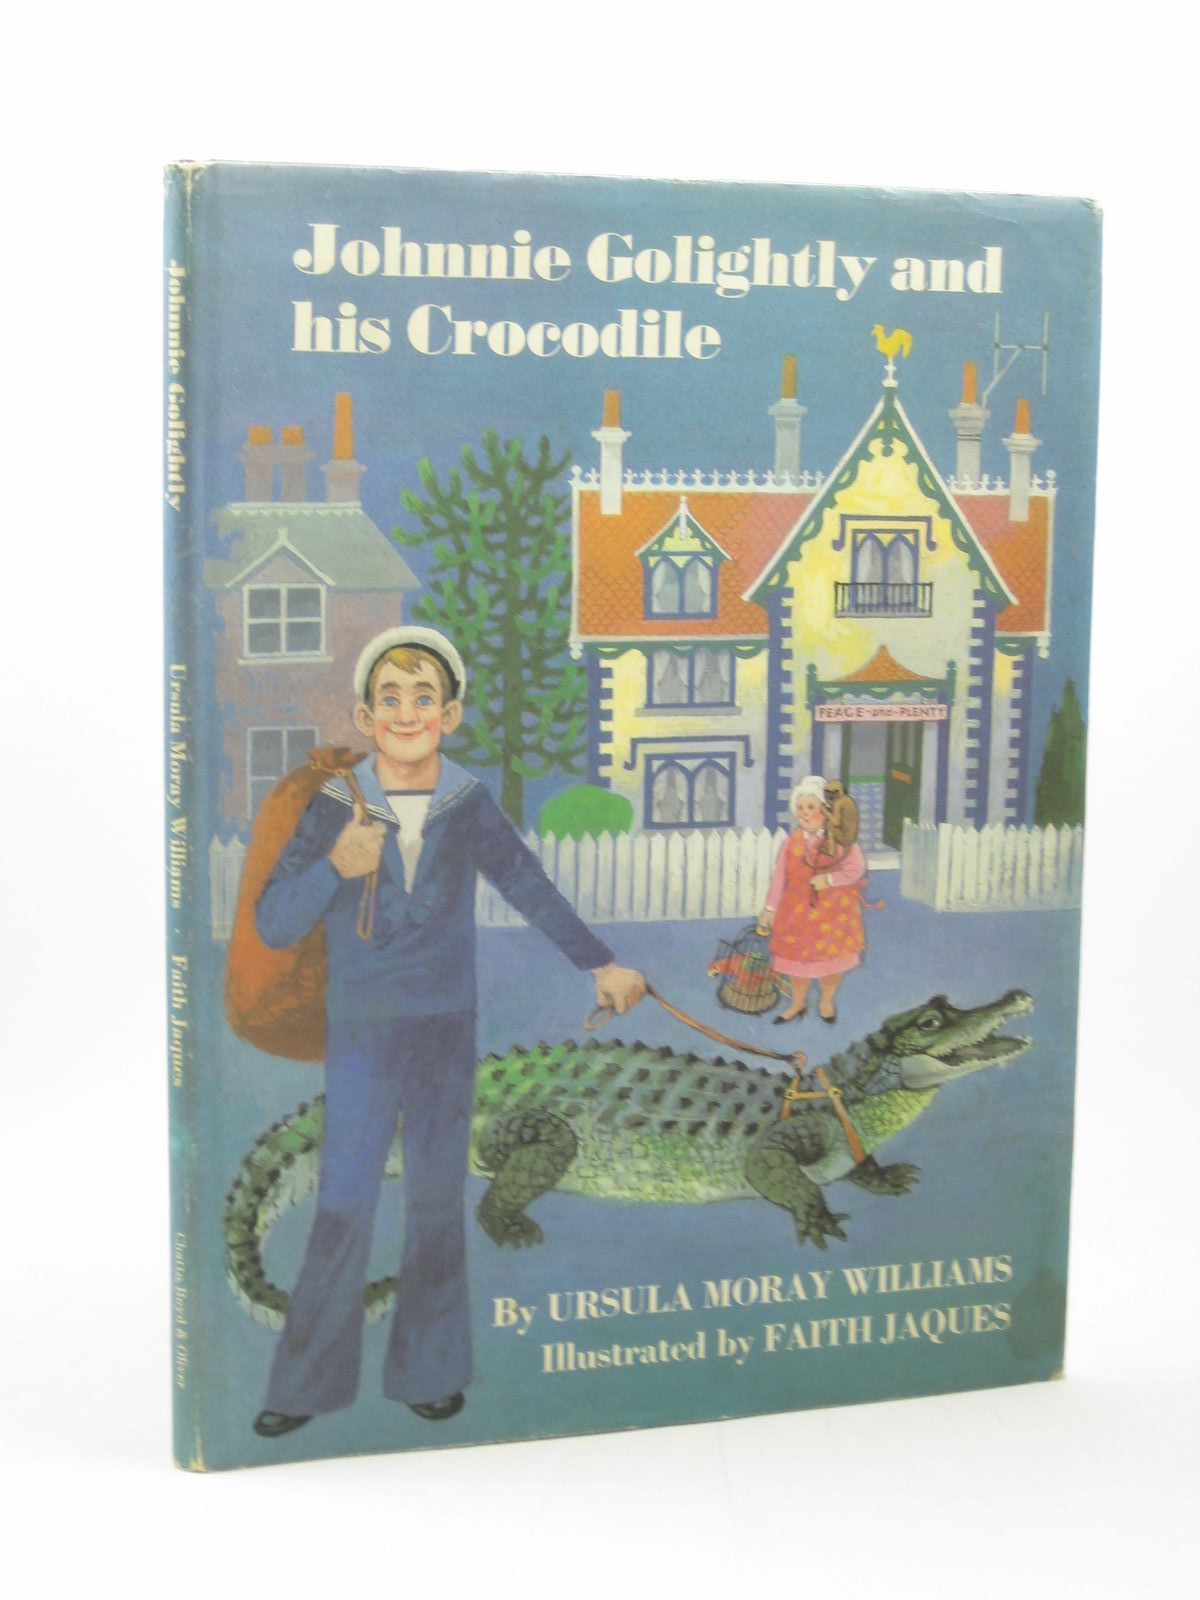 Photo of JOHNNIE GOLIGHTLY AND HIS CROCODILE written by Williams, Ursula Moray illustrated by Jaques, Faith published by Chatto, Boyd and Oliver (STOCK CODE: 1312895)  for sale by Stella & Rose's Books